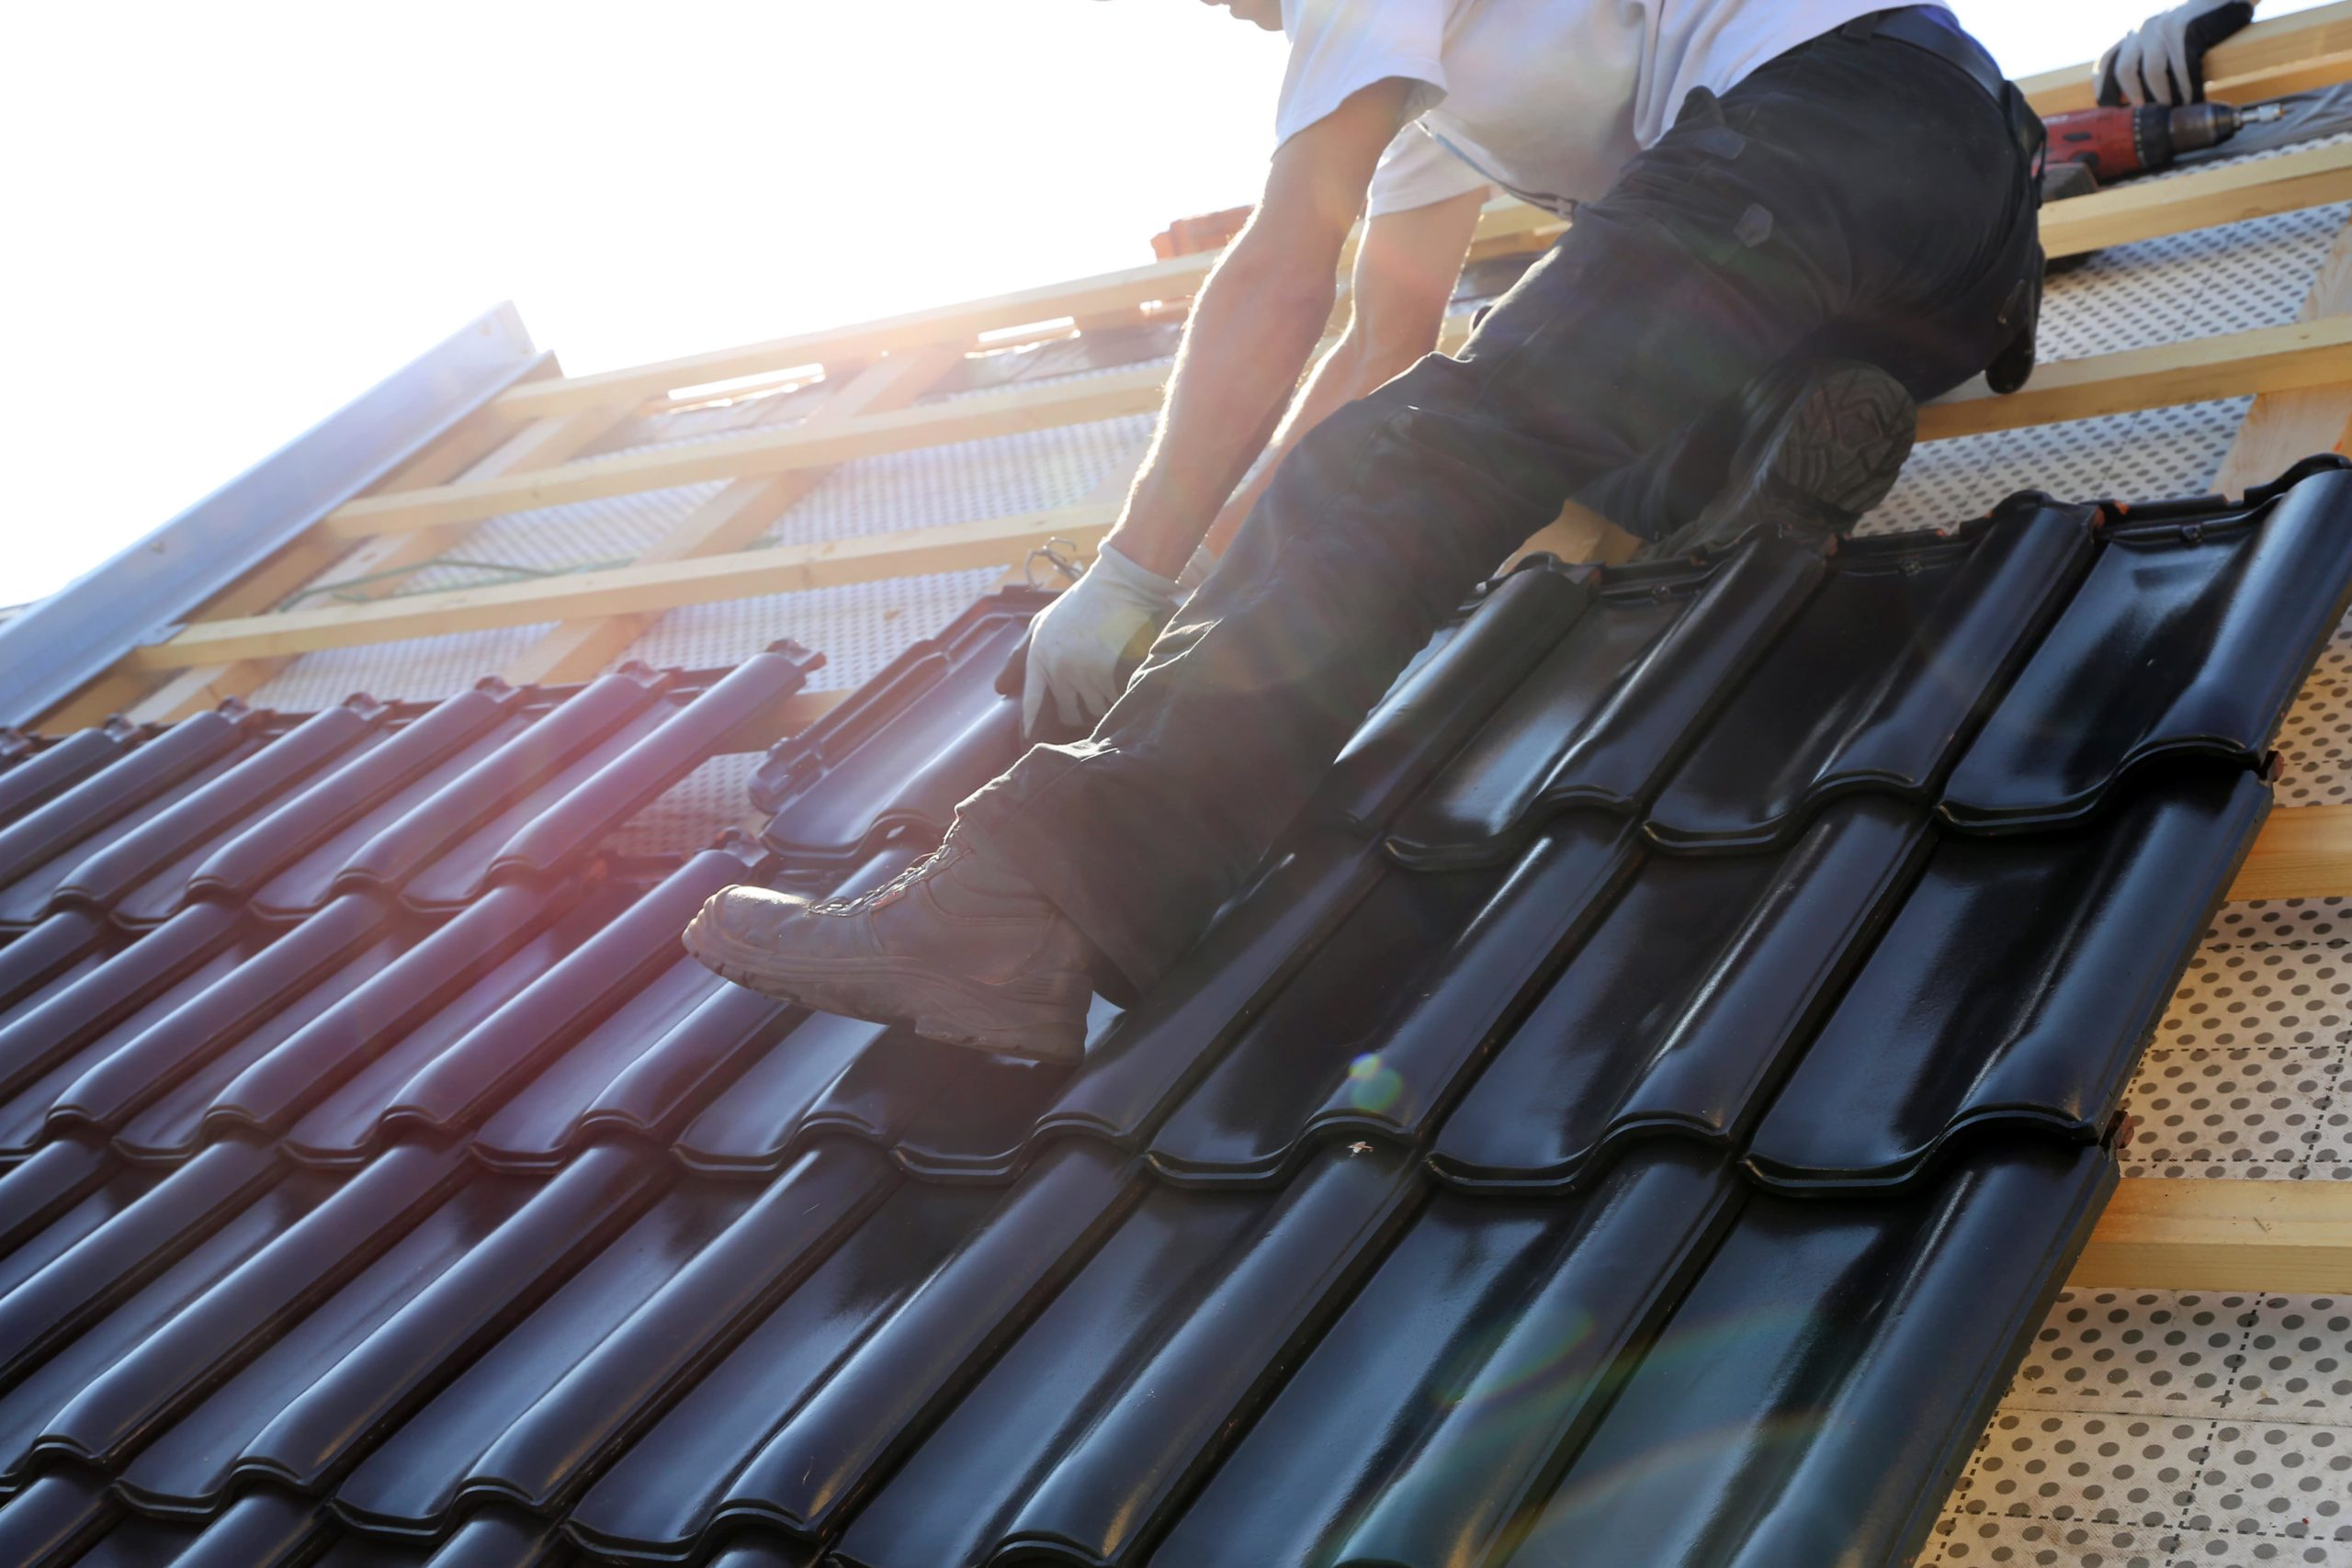 Roofer Installing Roofing Tiles - Rofing Companies - Get Your Quote